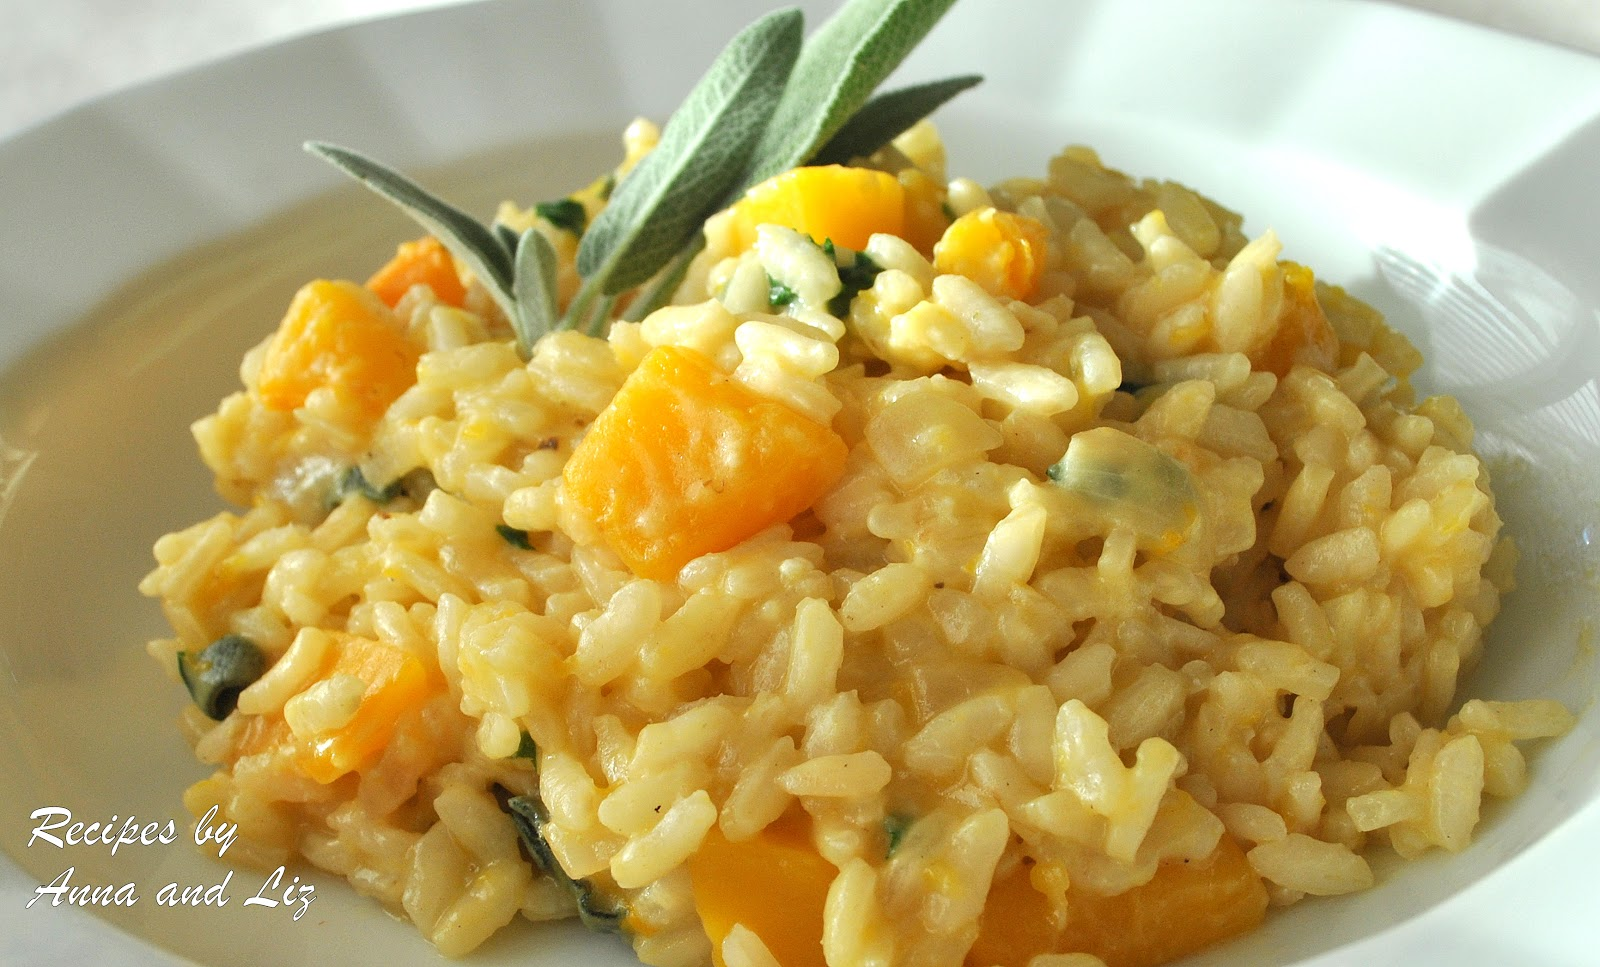 ... : Butternut Squash Risotto with Cheese and Sage (Risotto alla Zucca